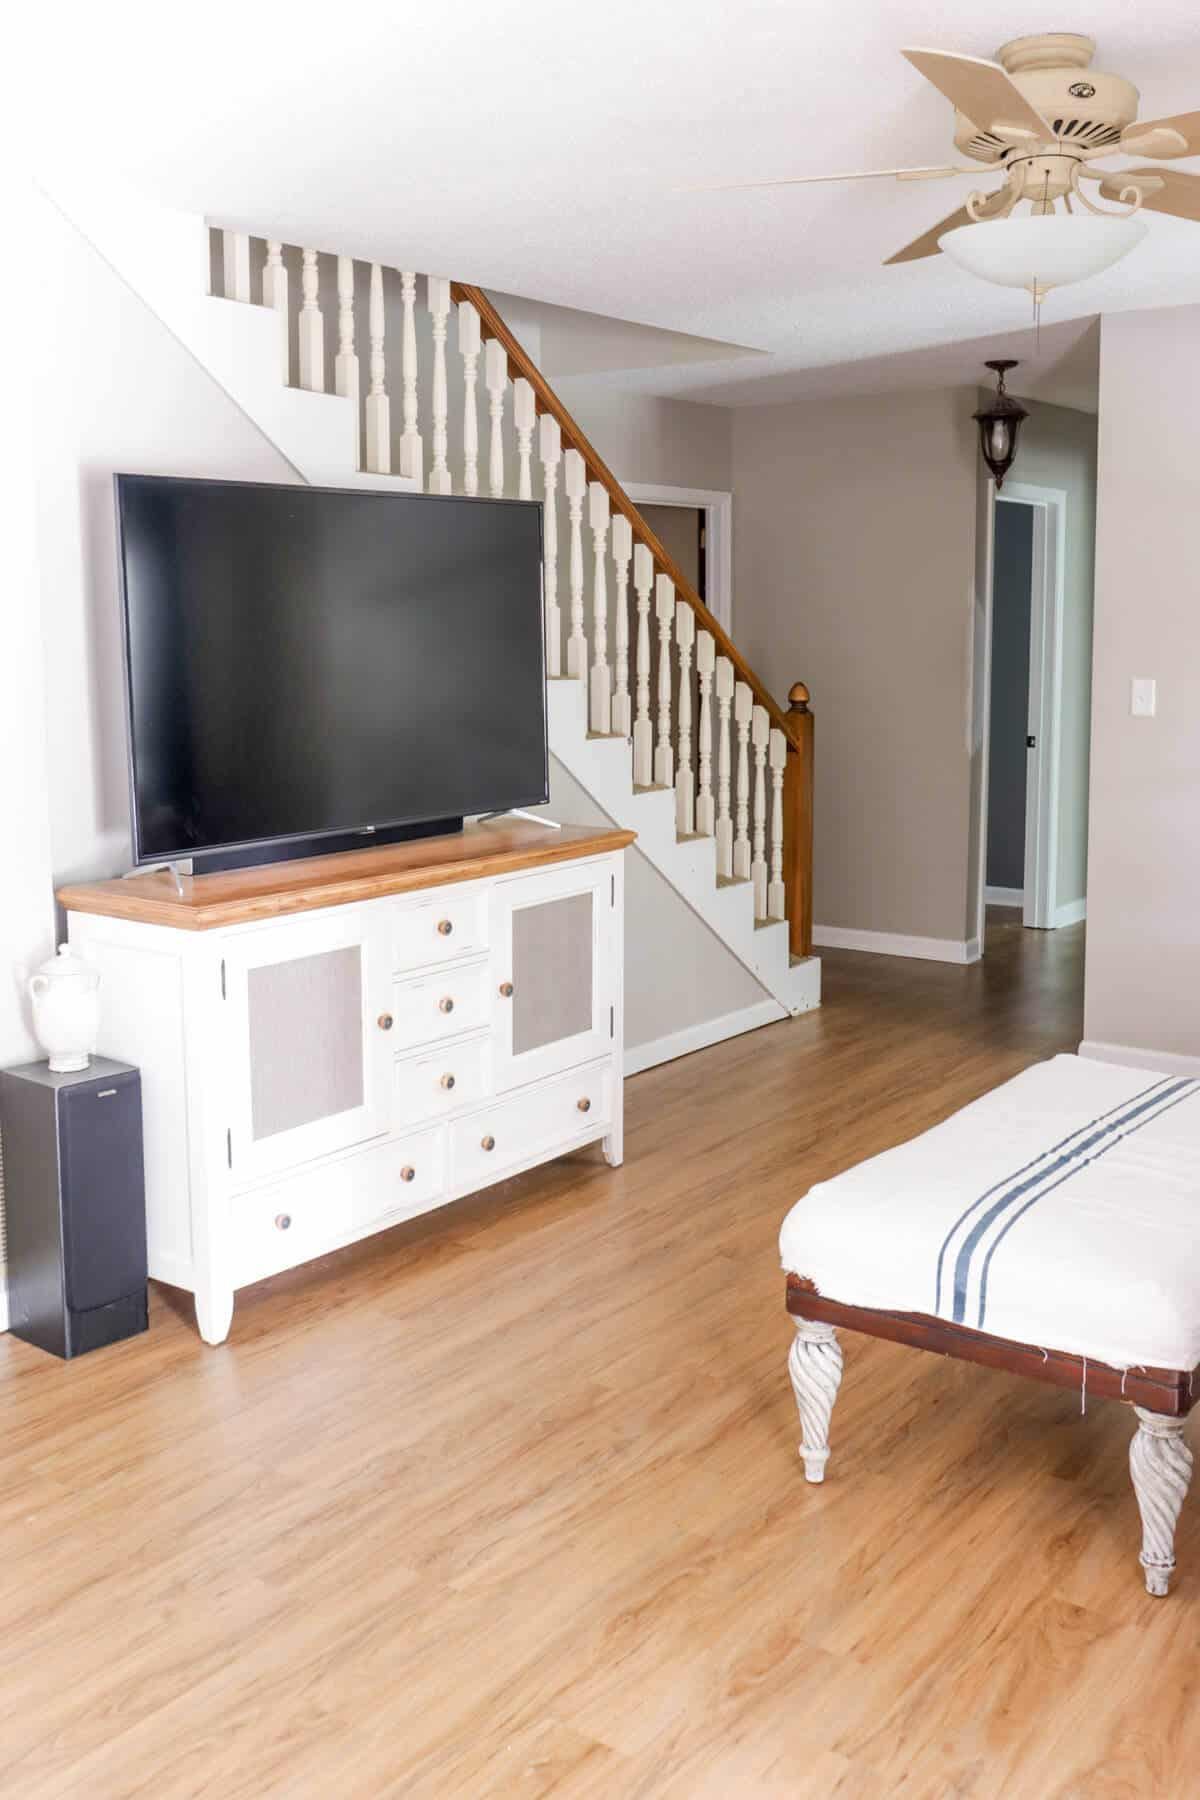 white entertainment center with black TV in a basement family room with popcorn ceilings and beige ceiling fan